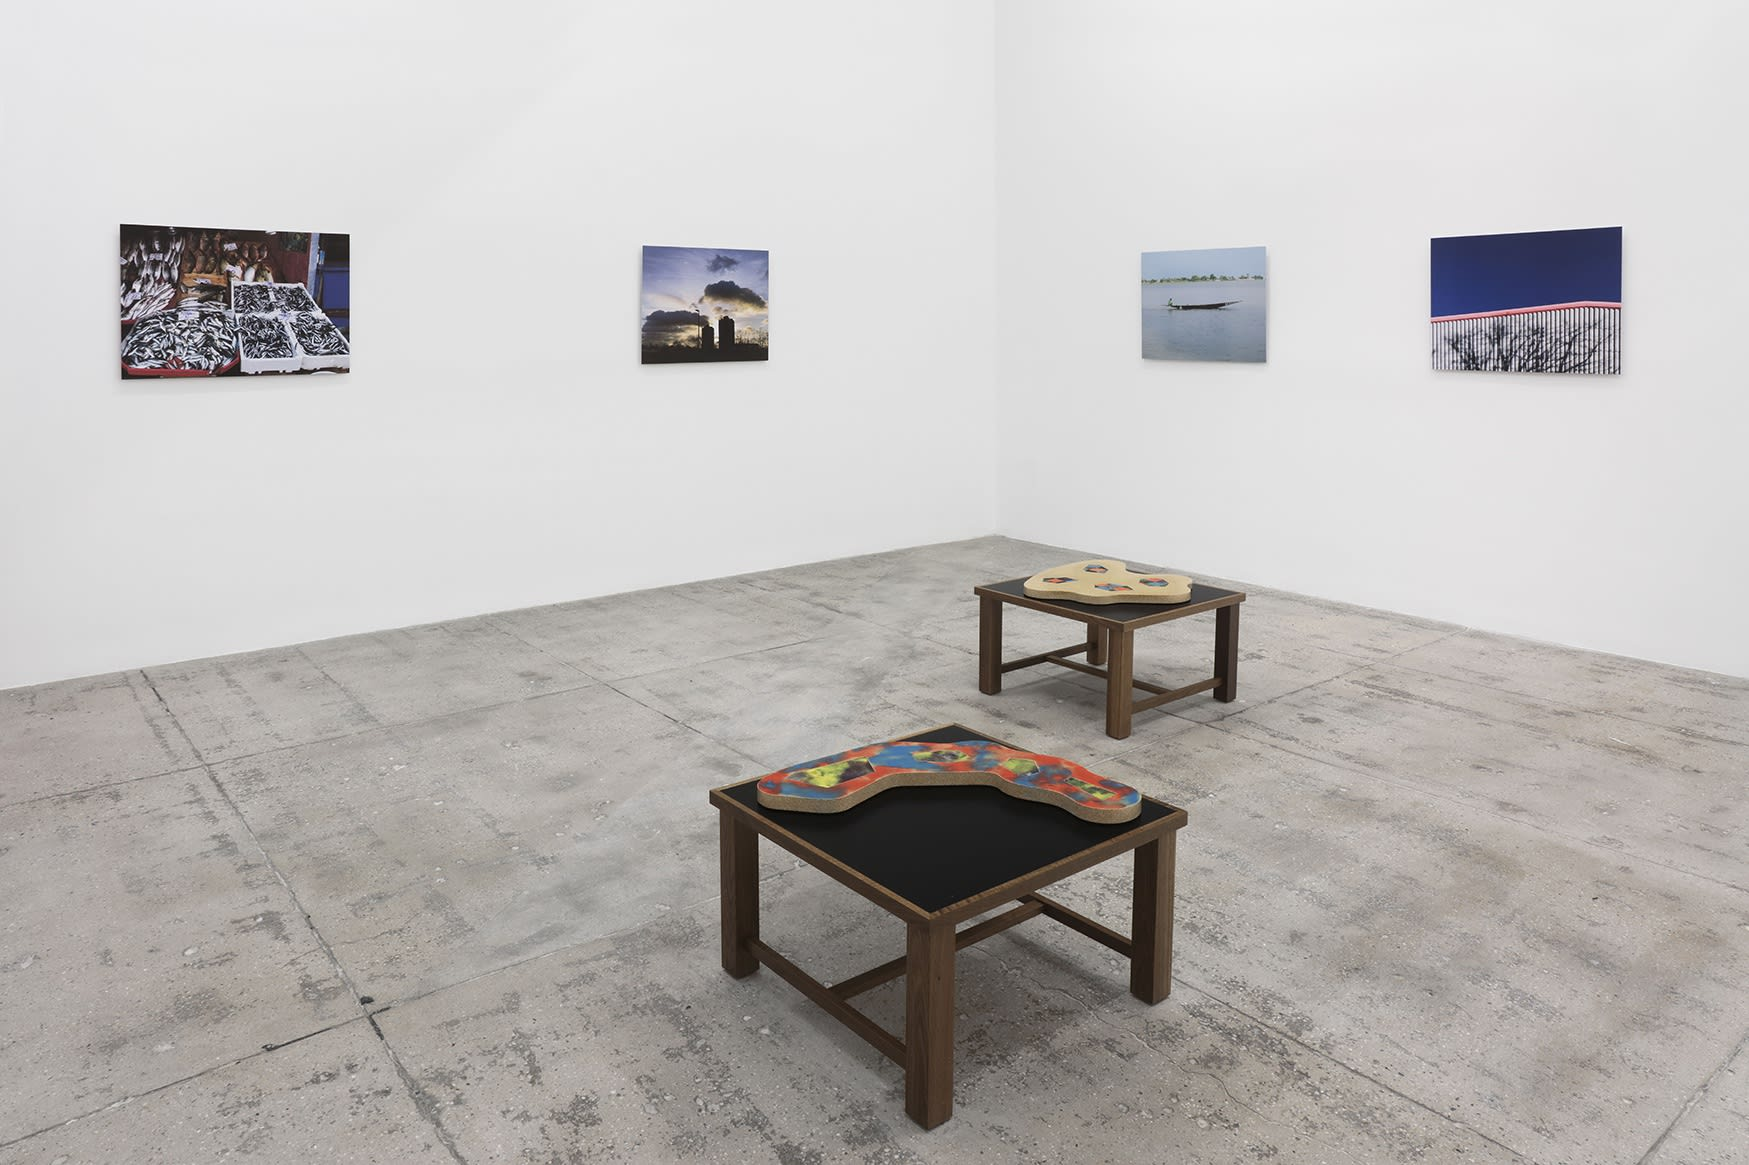 4 photographs hang in the corner of a large white room; 2 flat sculptures sit on wooden platforms in the foreground.